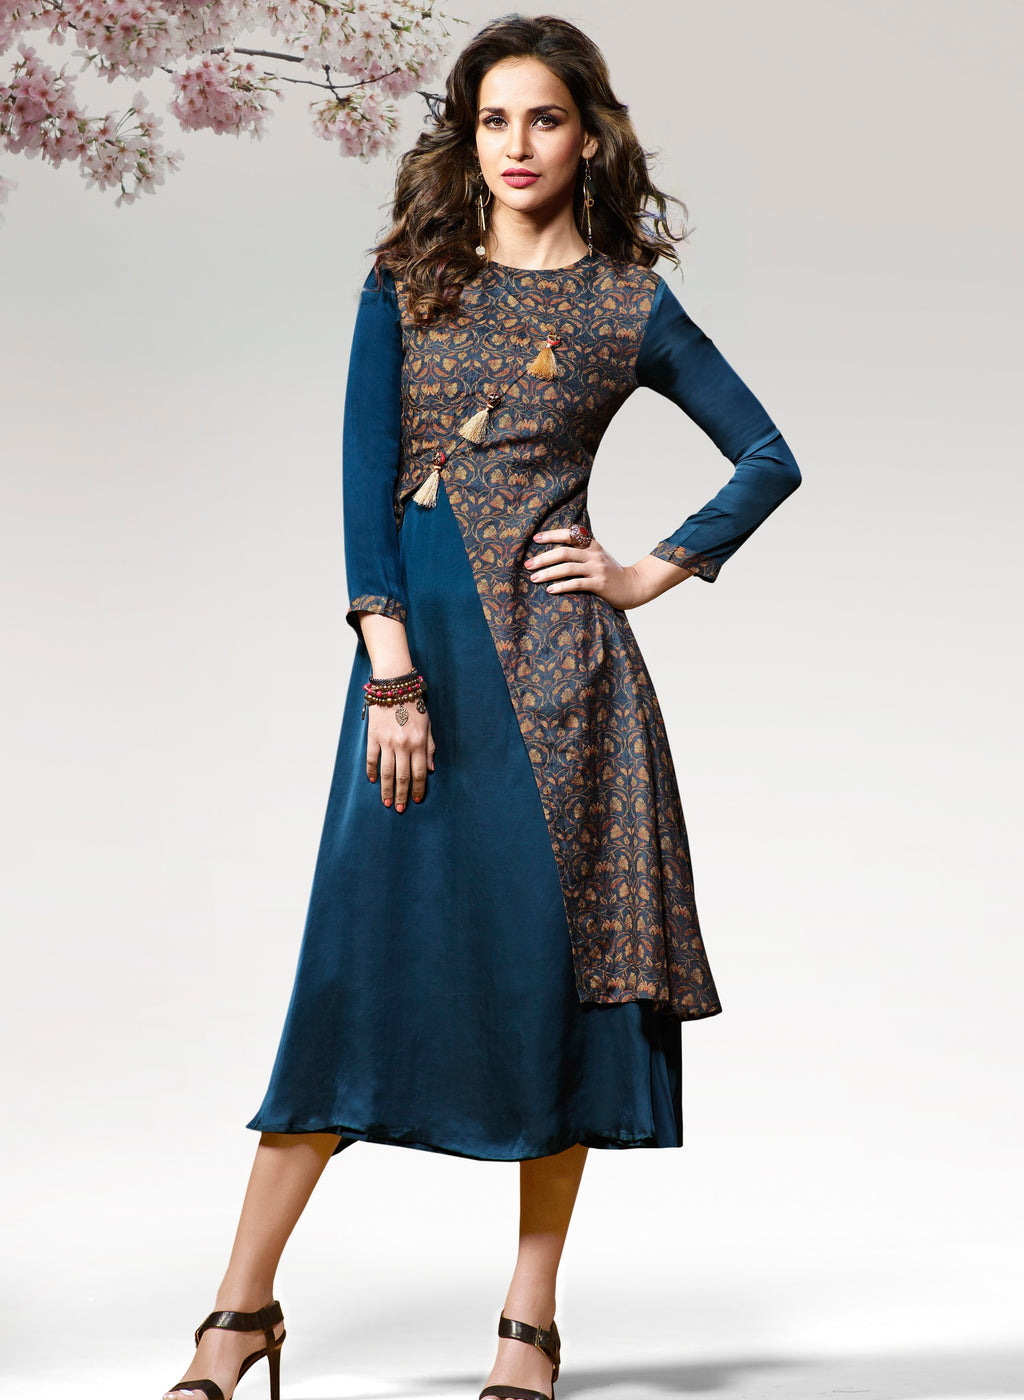 Blue Color Silk & Crepe Readymade Party Wear Kurtis ( Sizes - 38,40) Vinay TumbaTwinkle Catlog SJ-10456